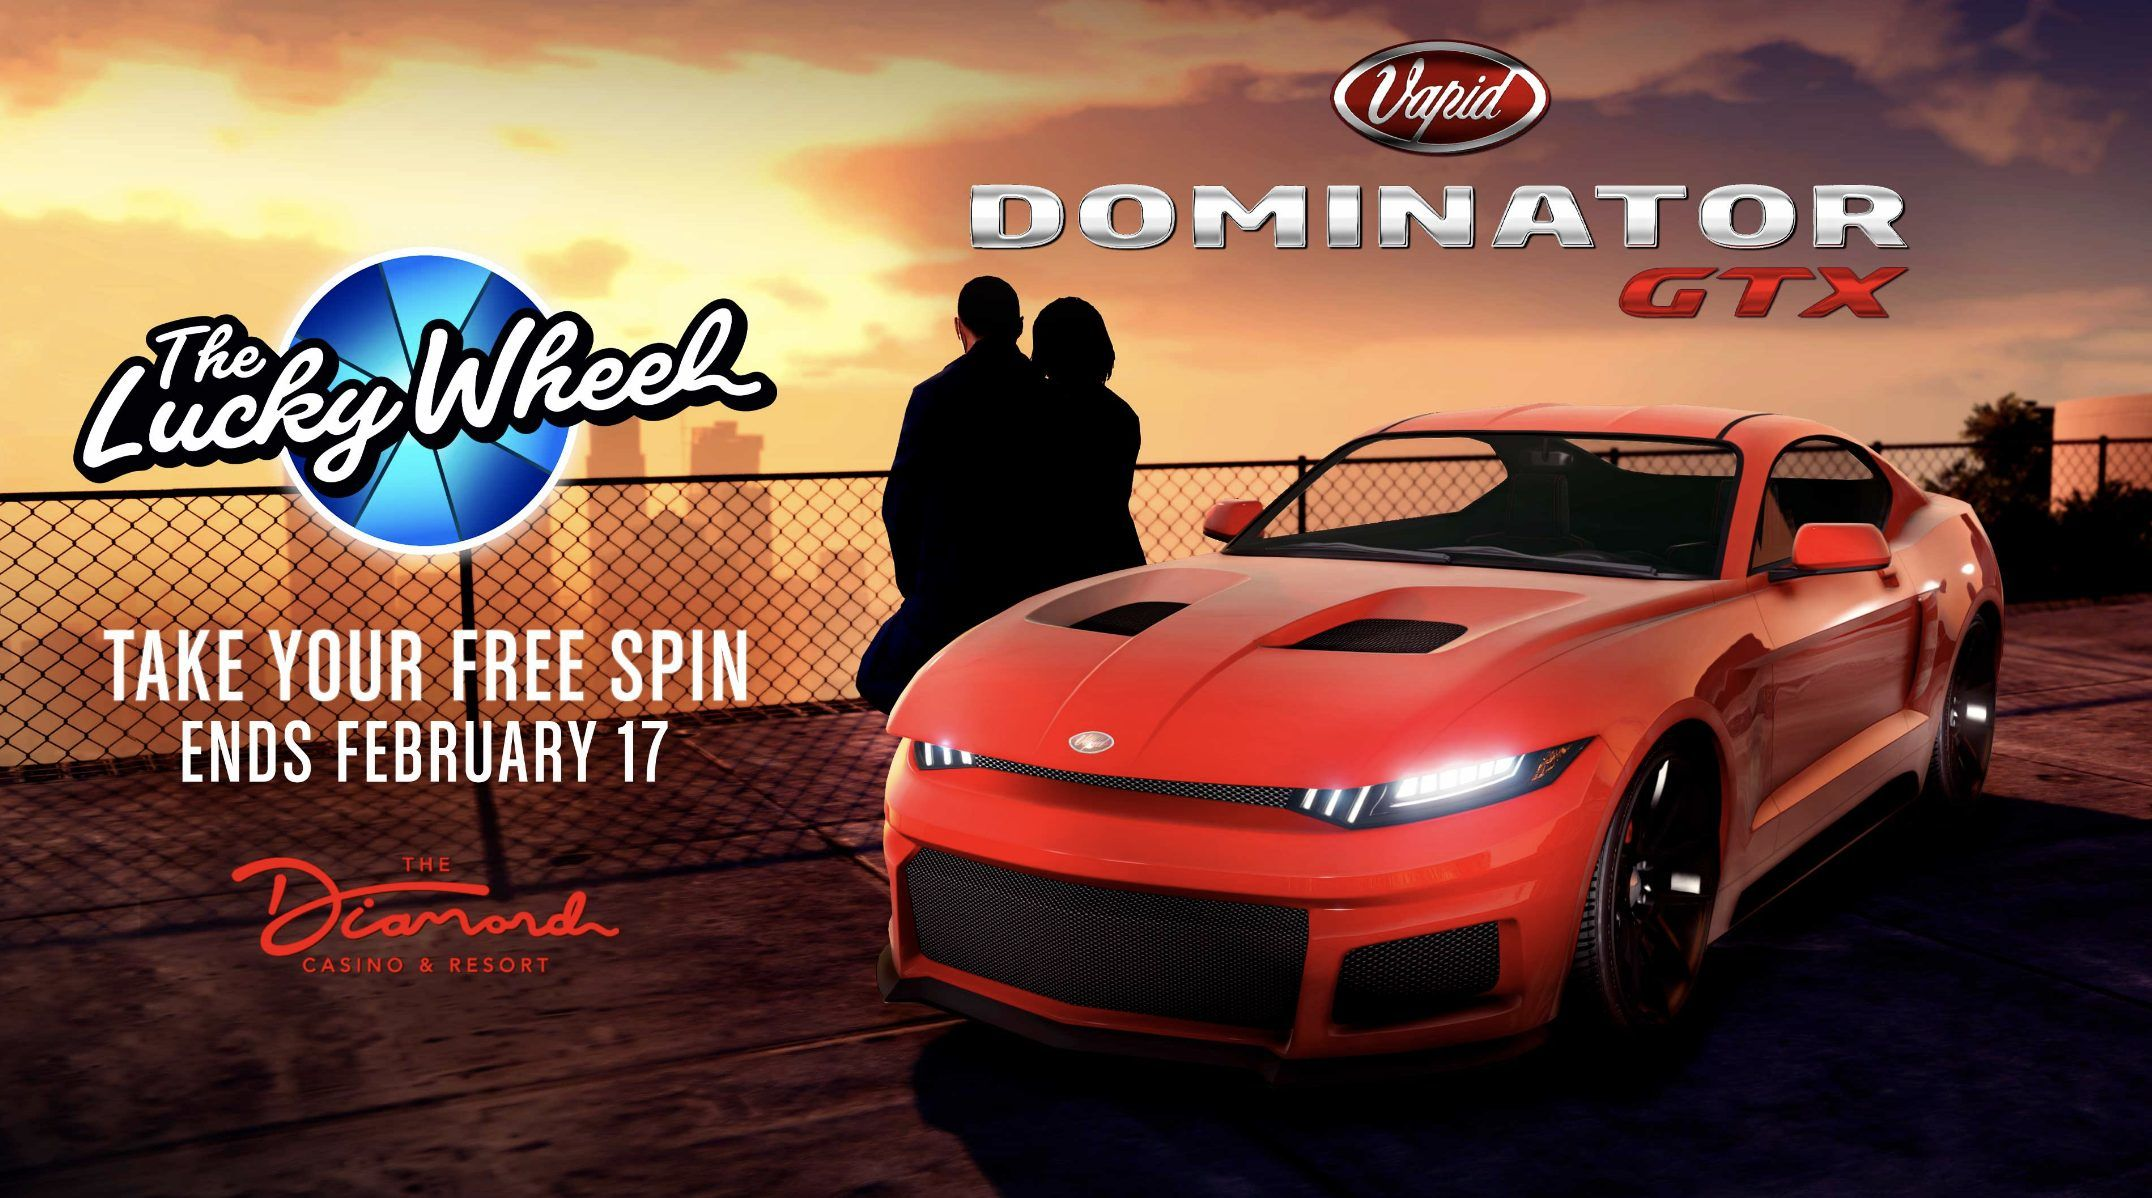 Vapid Dominator GTX Podium Diamond Casino & Resort